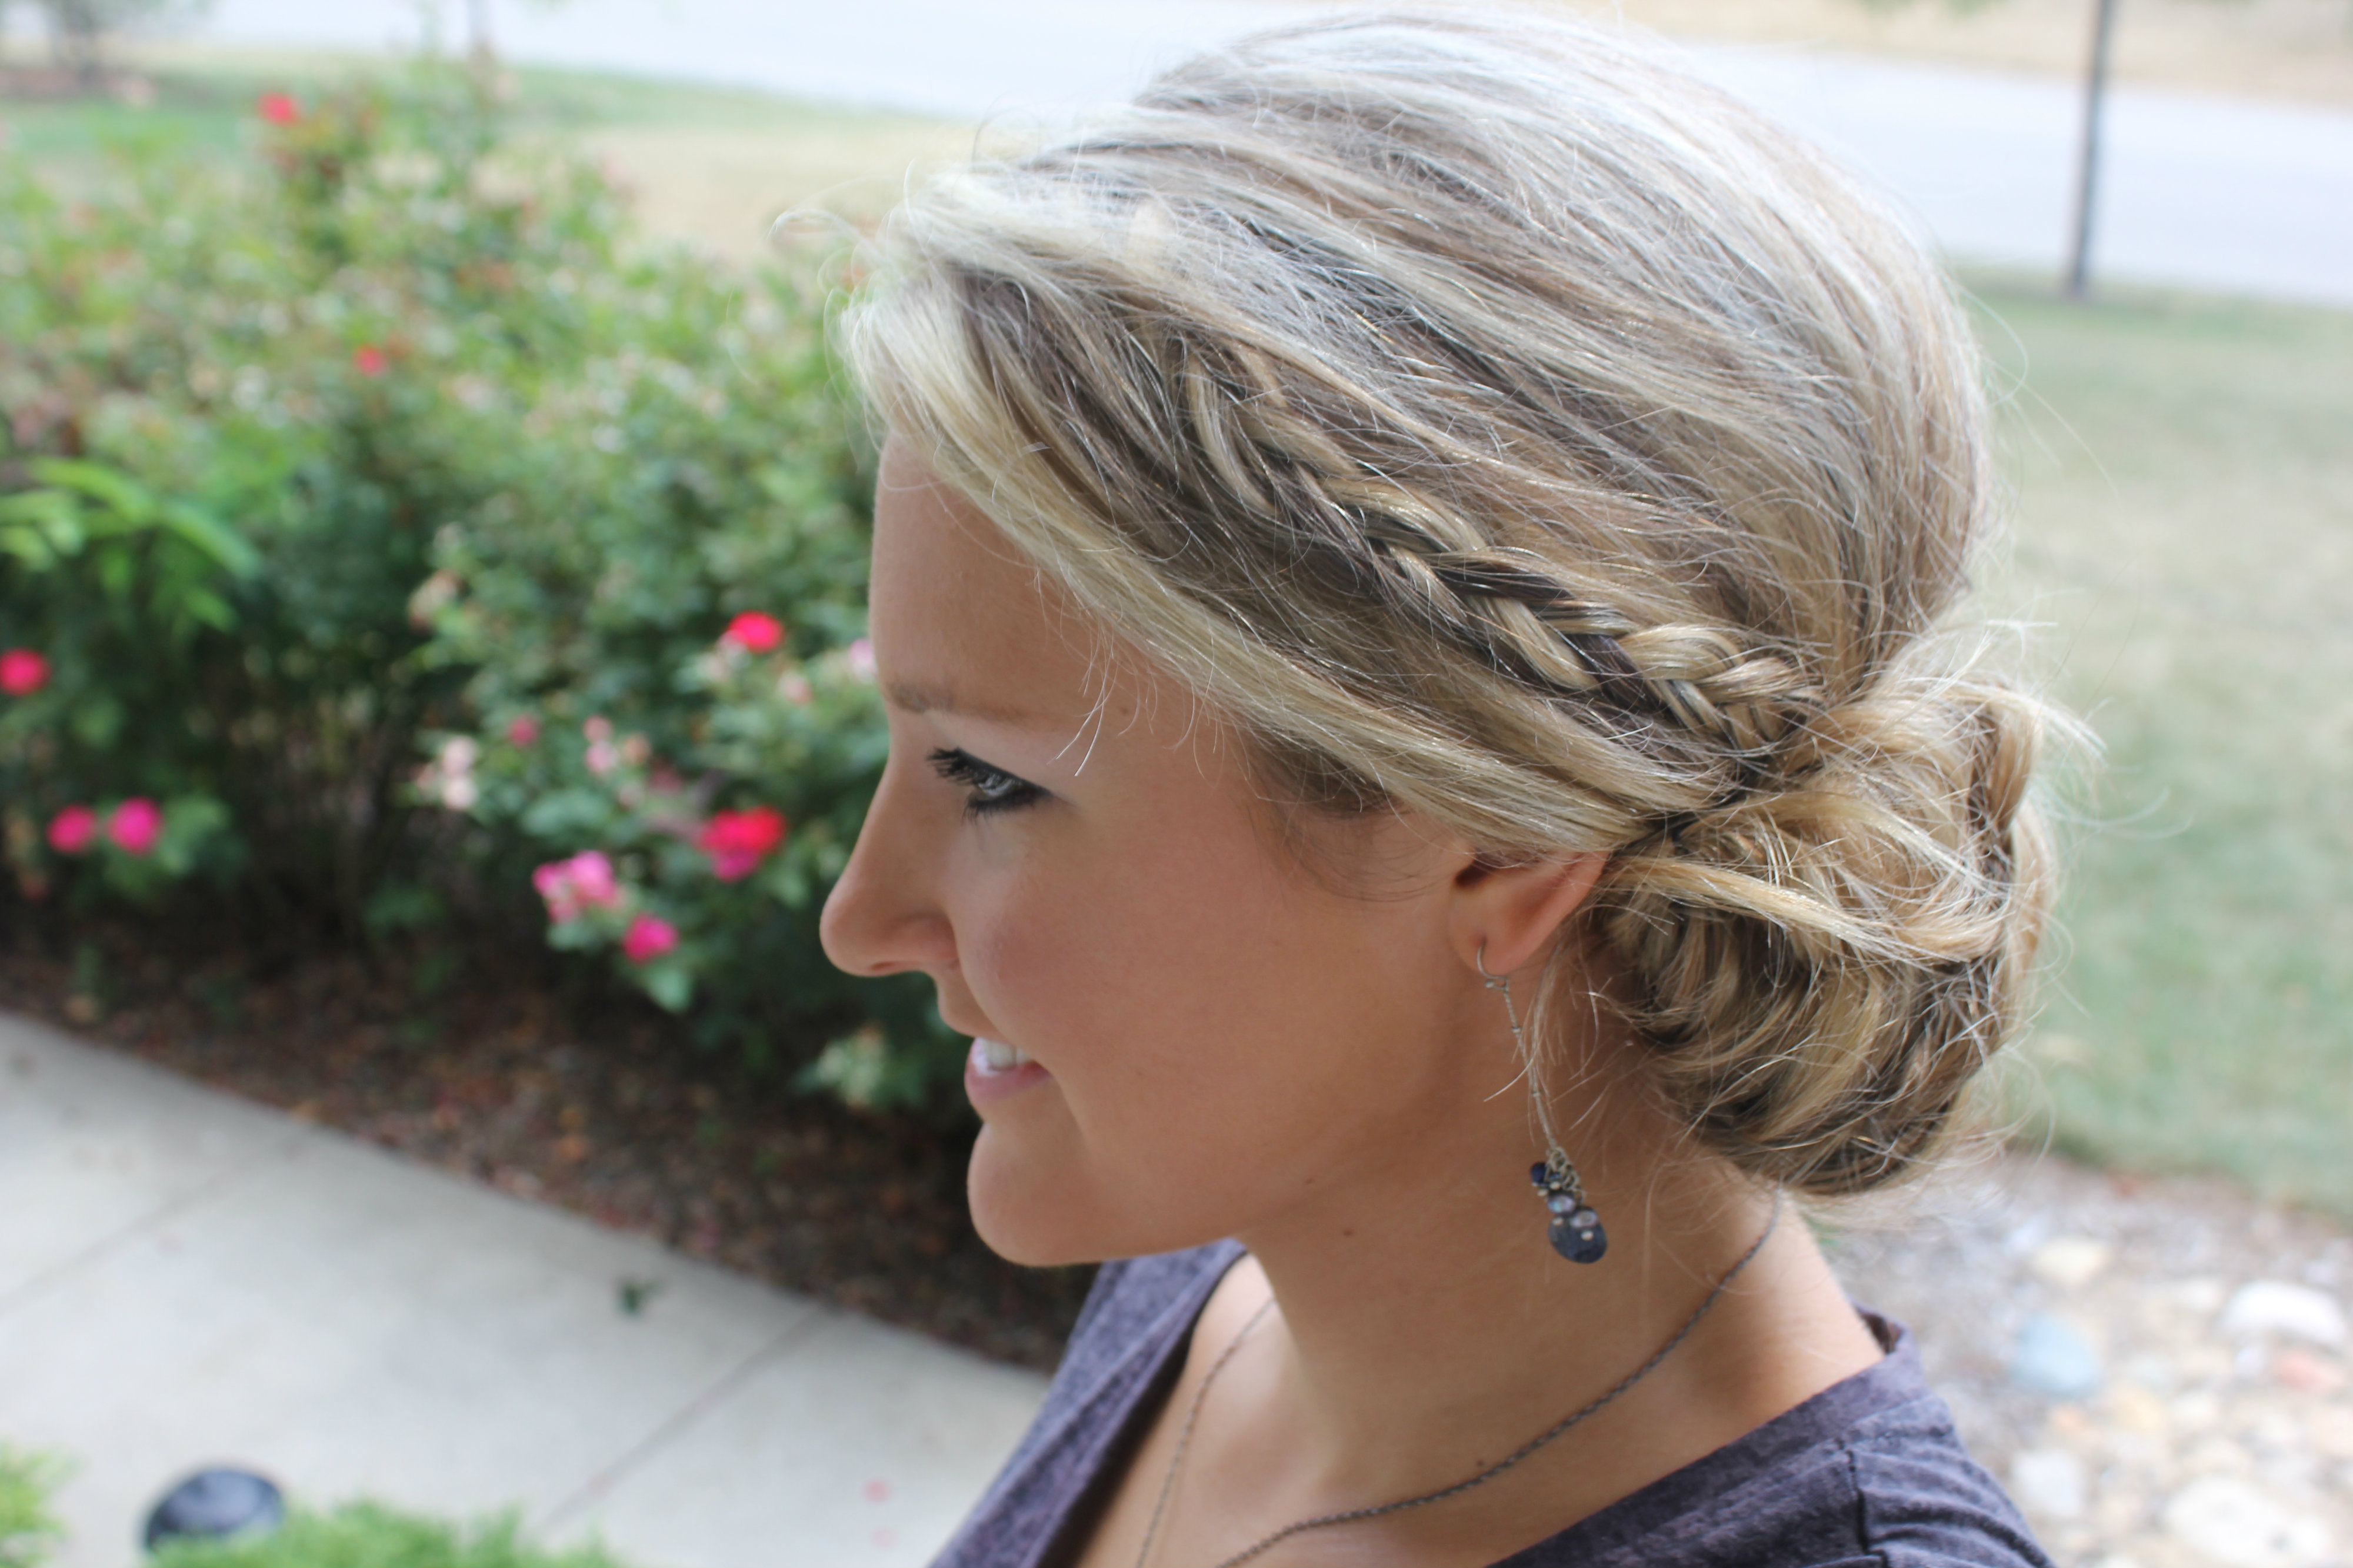 How to Style a Simple Messy Bun with Braids